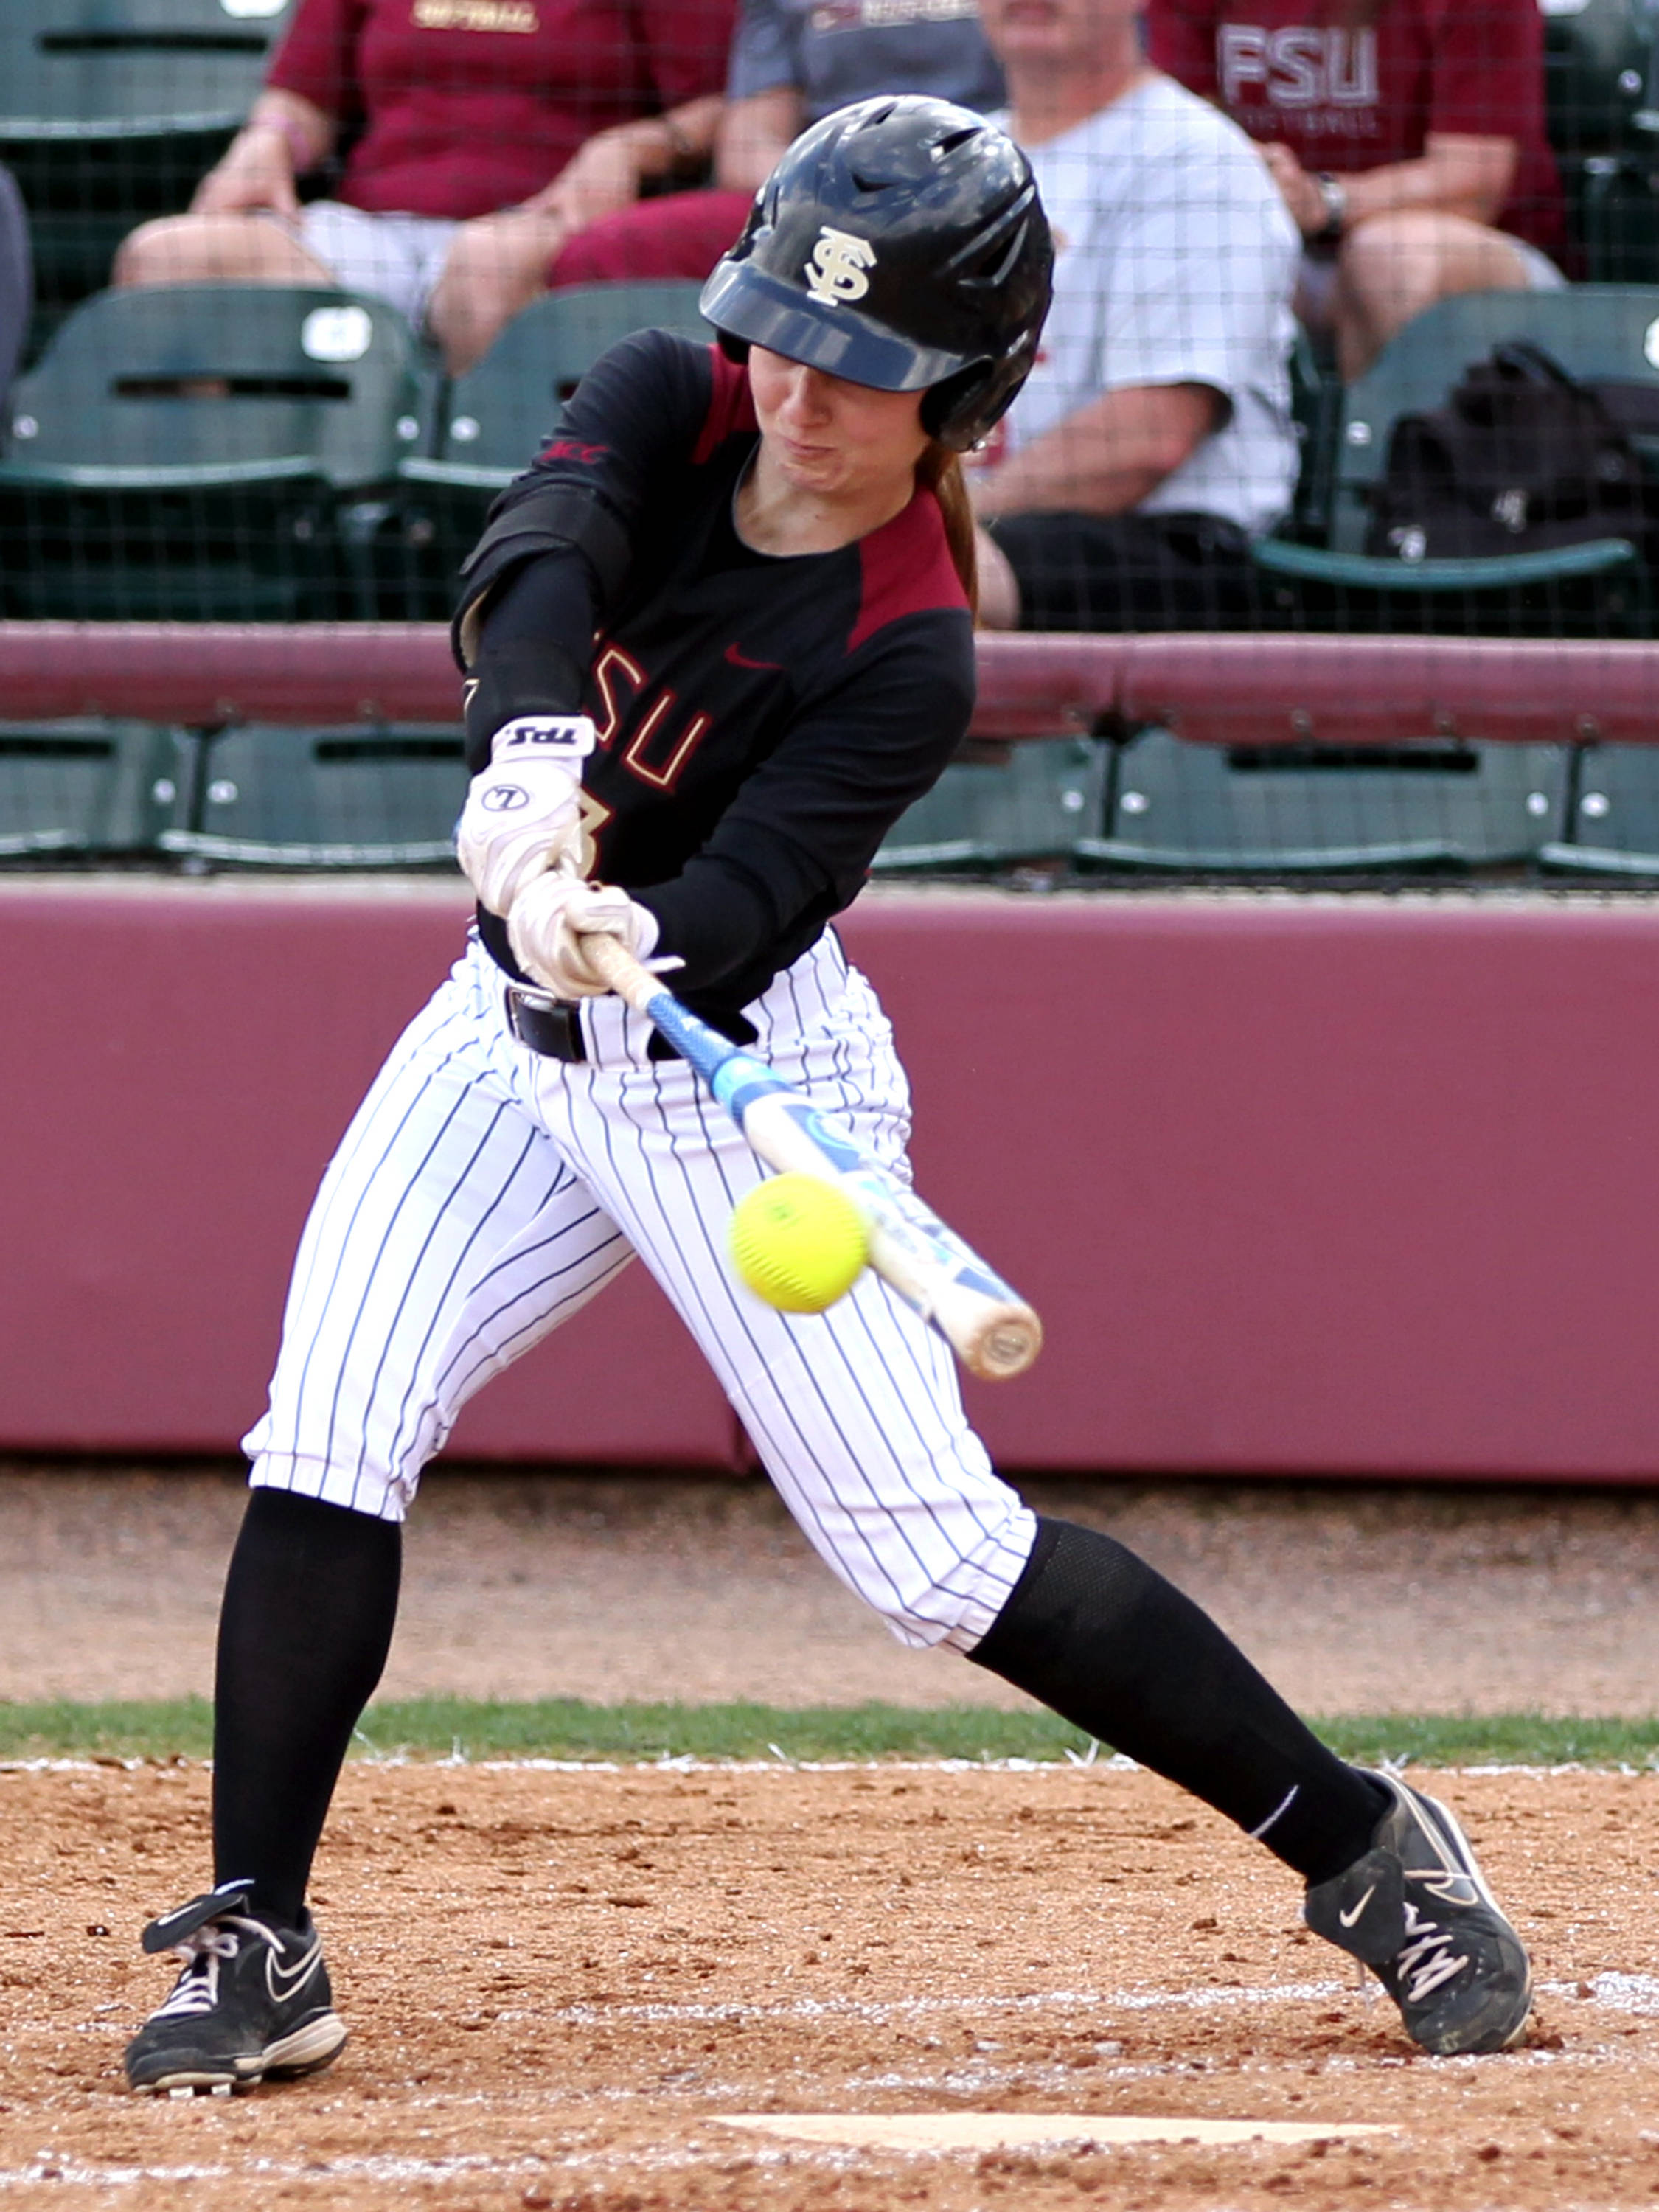 Kirstin Austin (33), FSU vs BC, 04/07/13 . (Photo by Steve Musco)